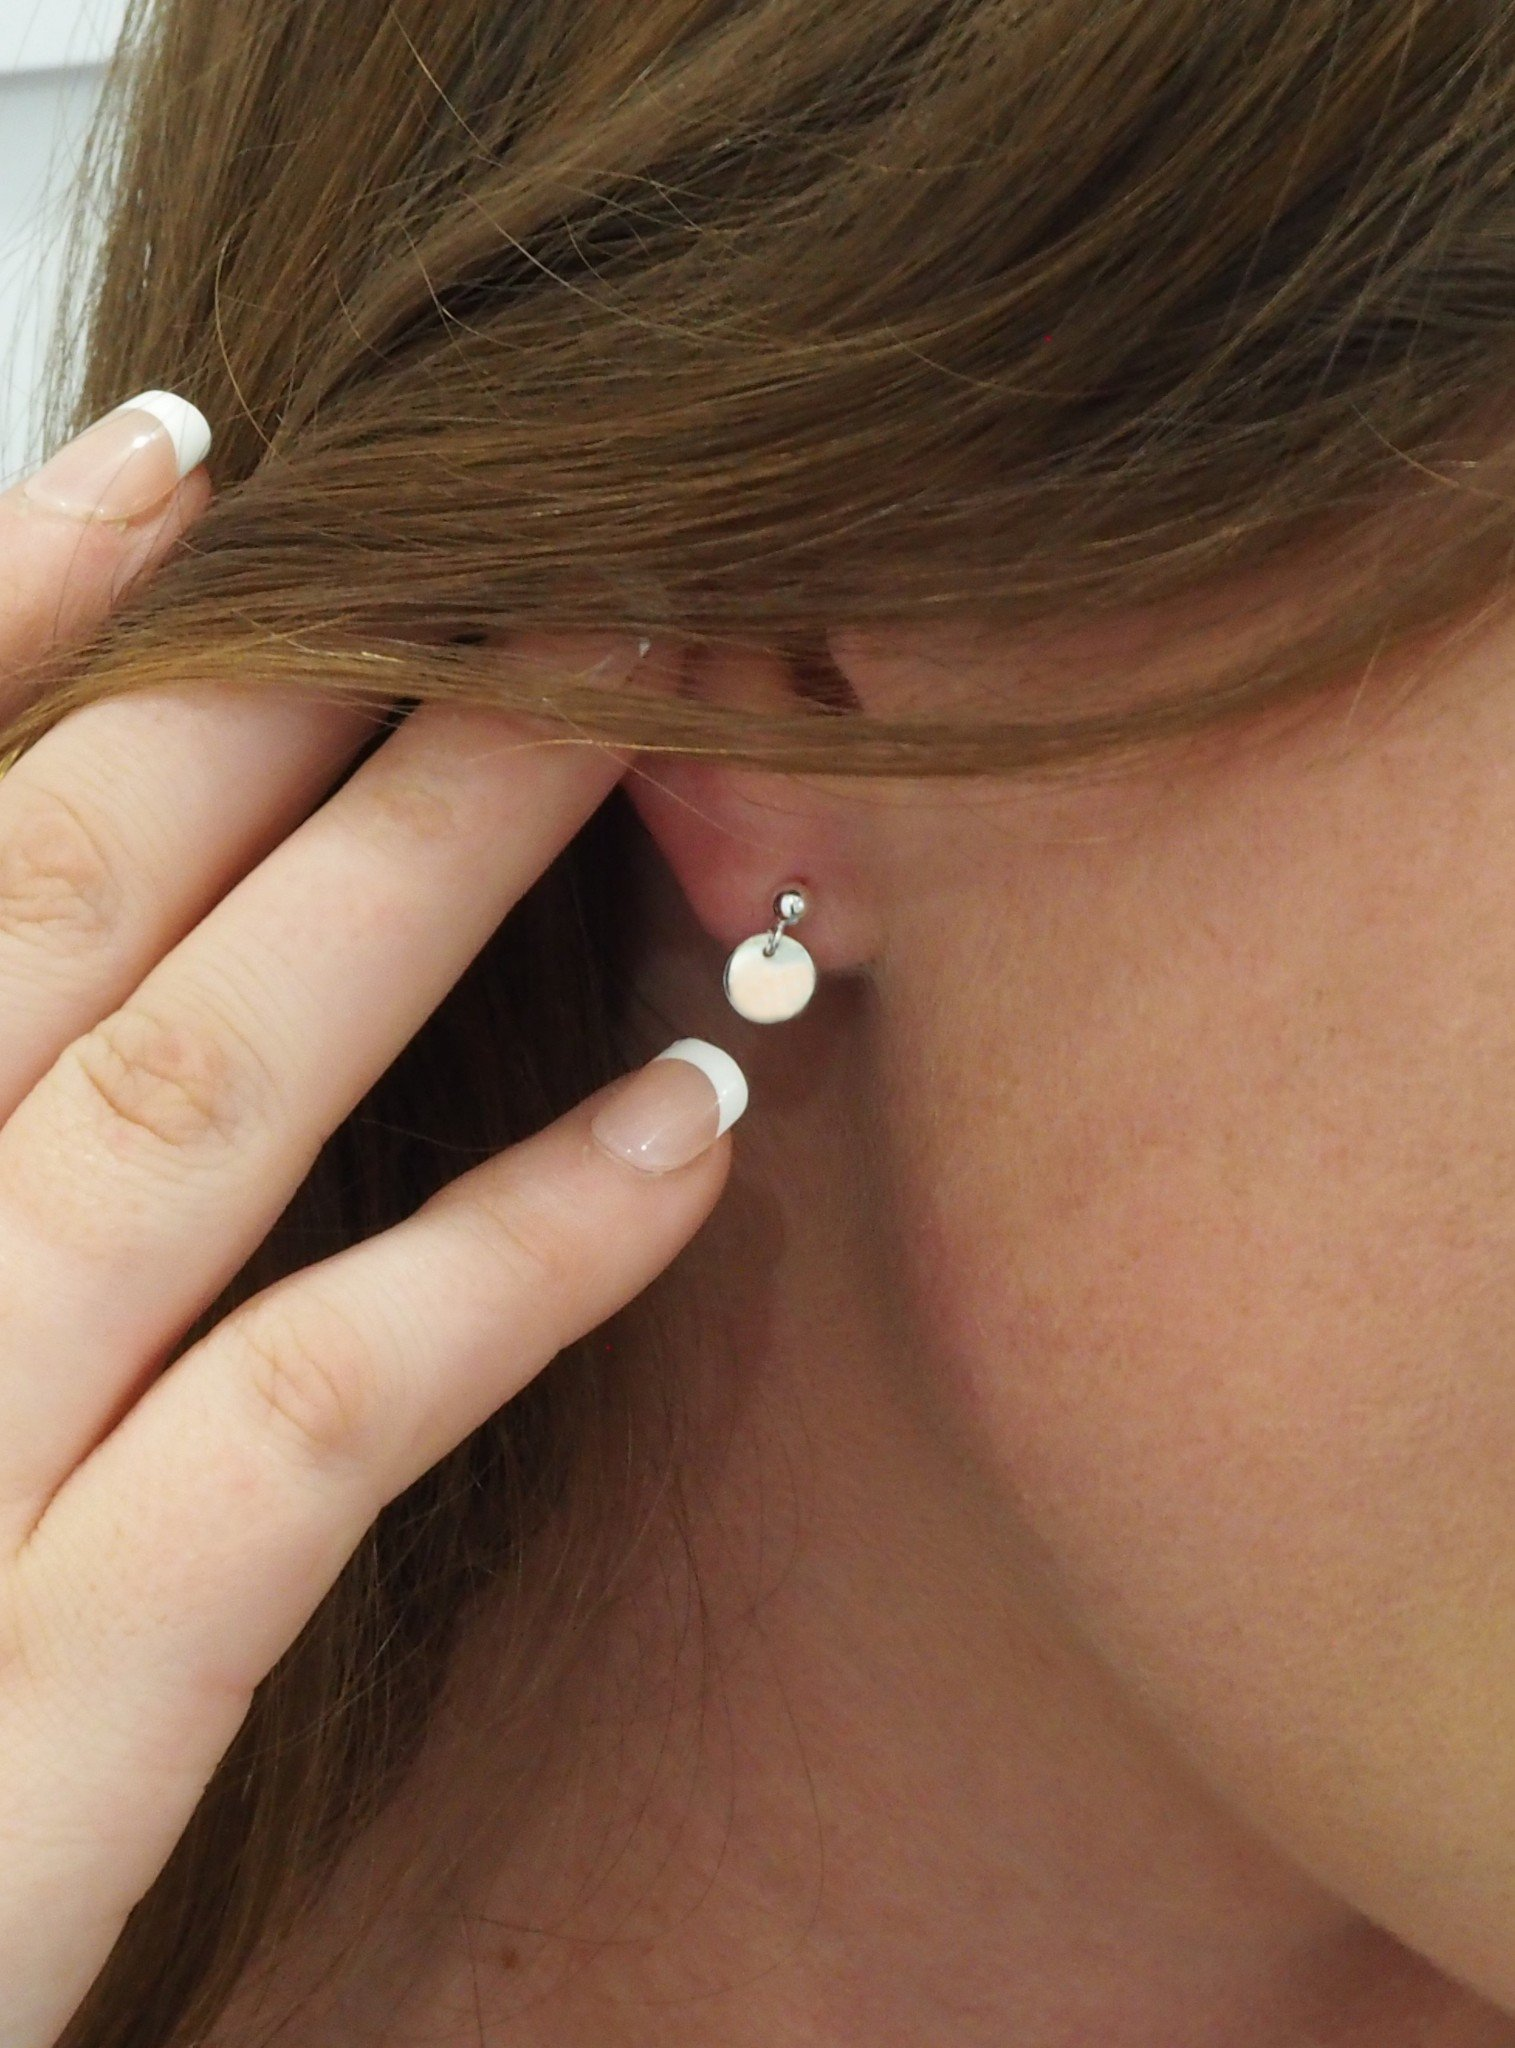 Mini Coin Tag Ball Stud Earrings in Sterling Silver